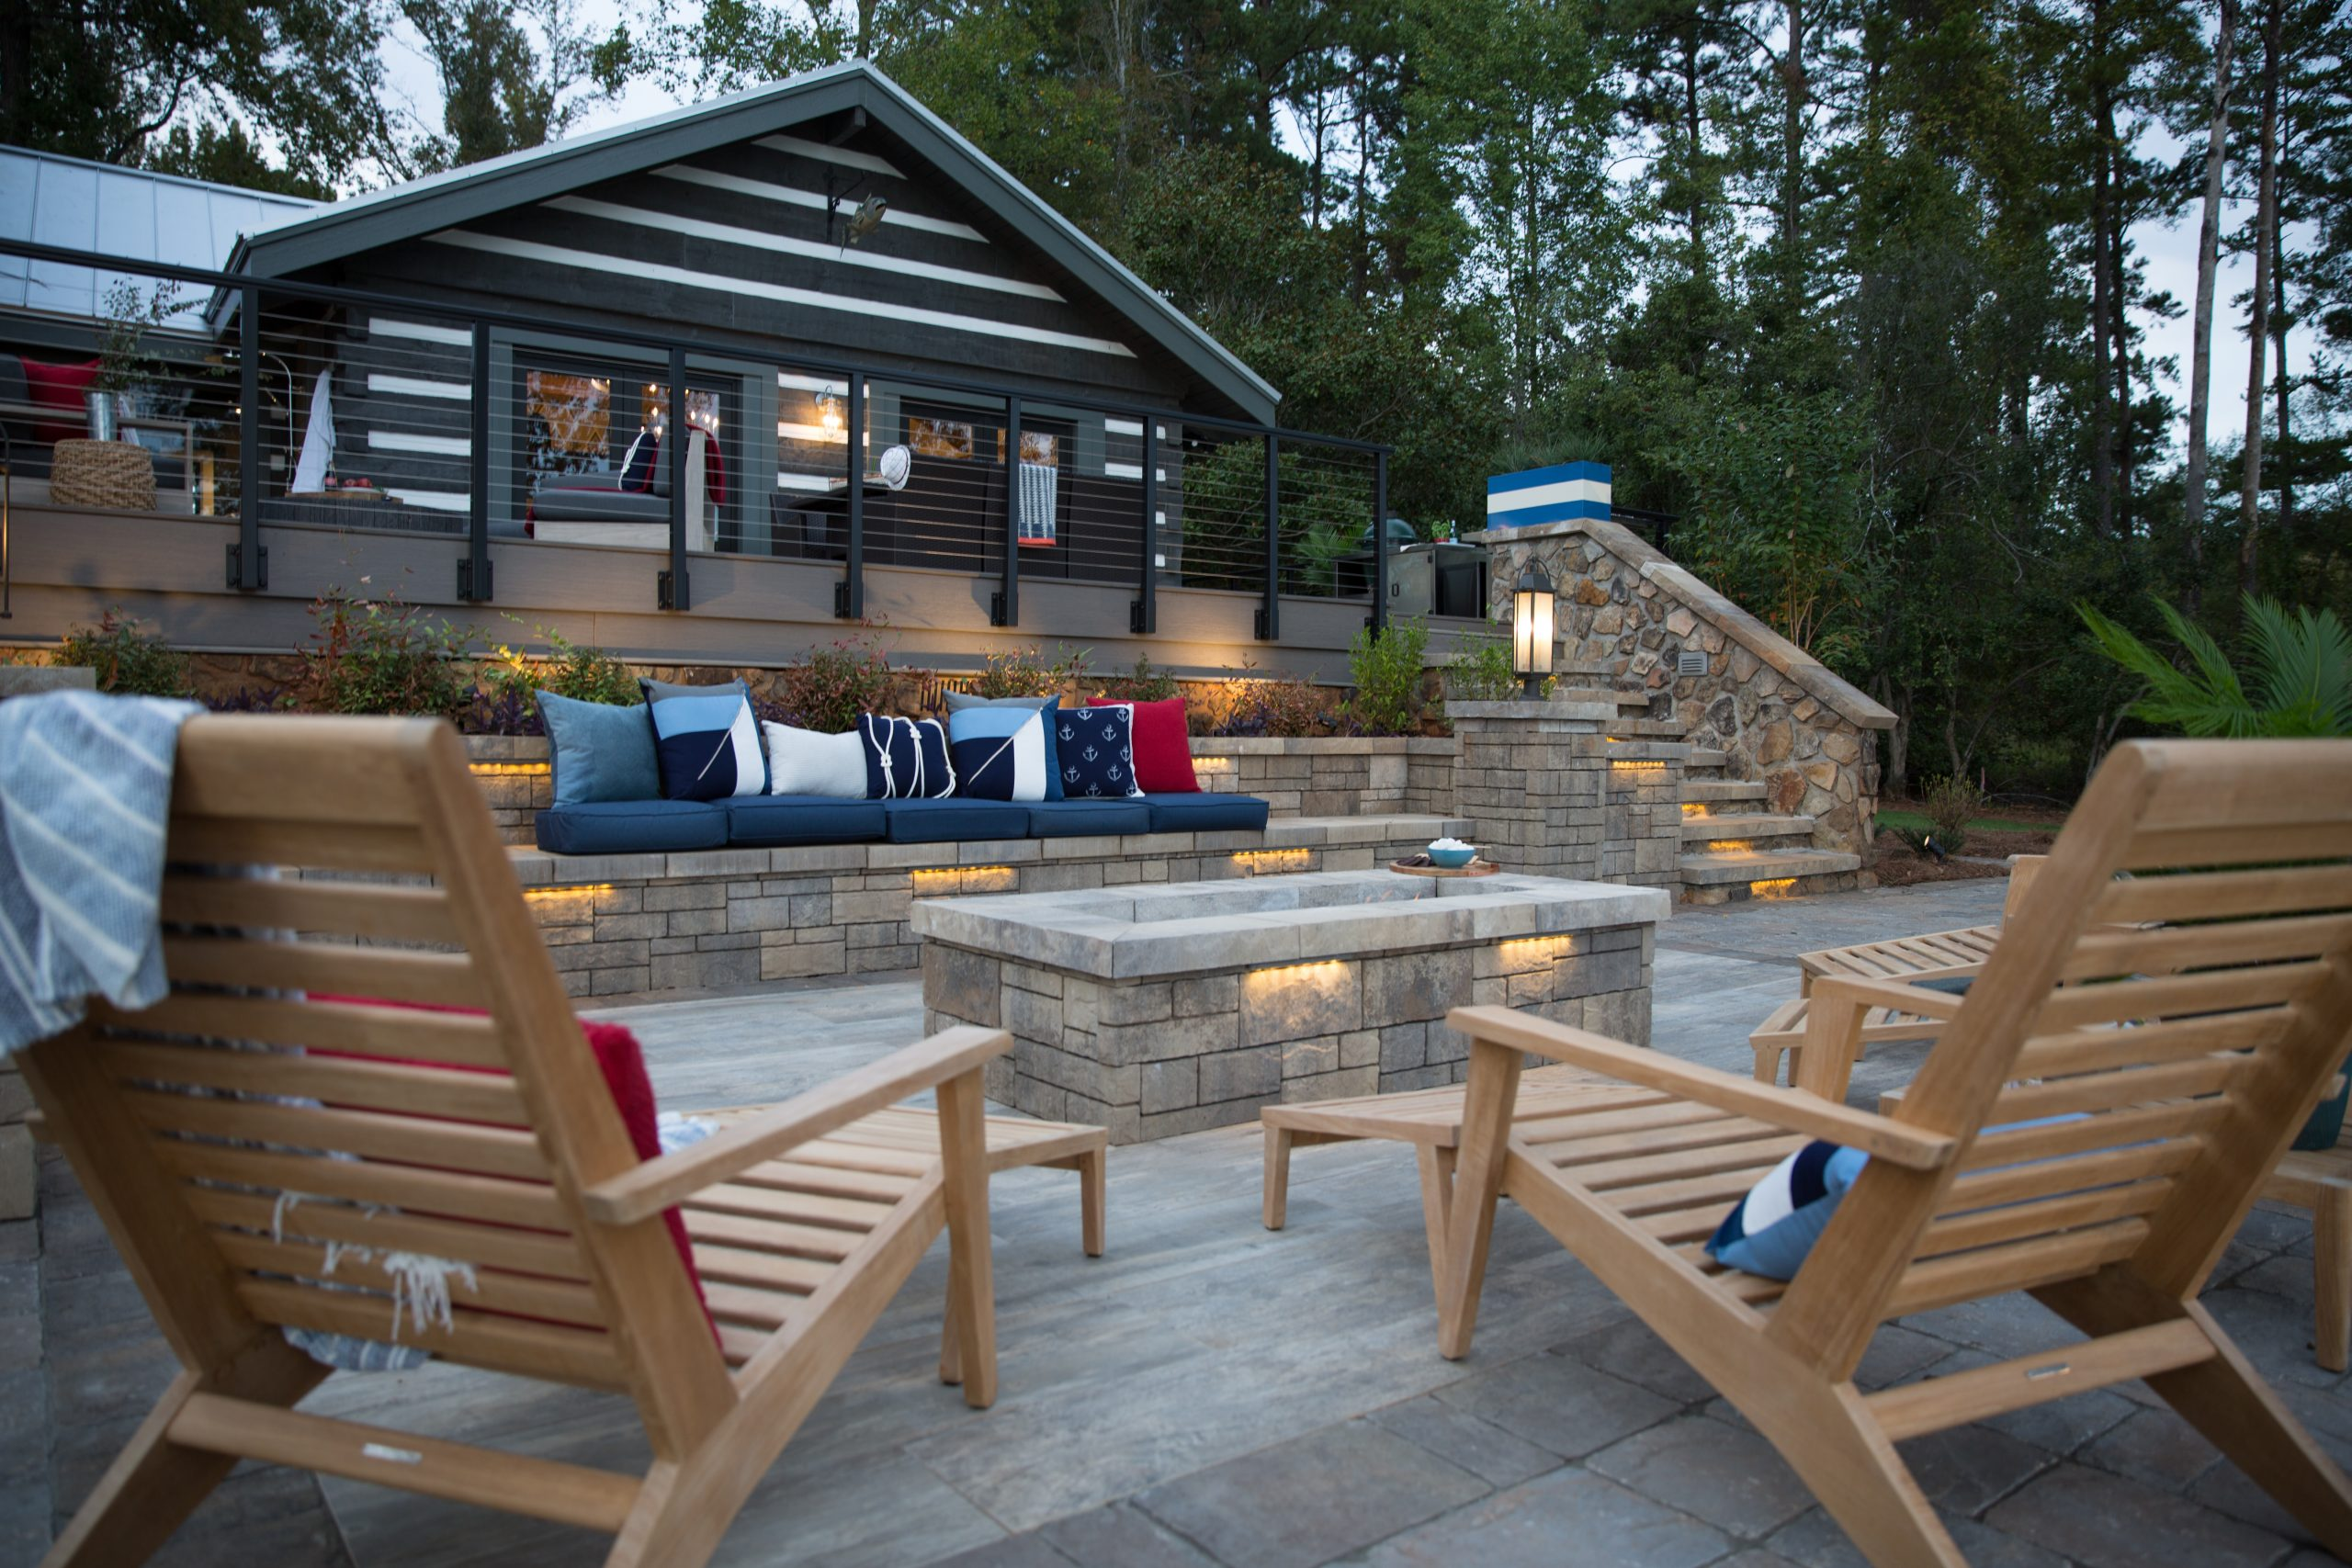 Fire pit patio and seat wall design ideas (Wade Works Creative)